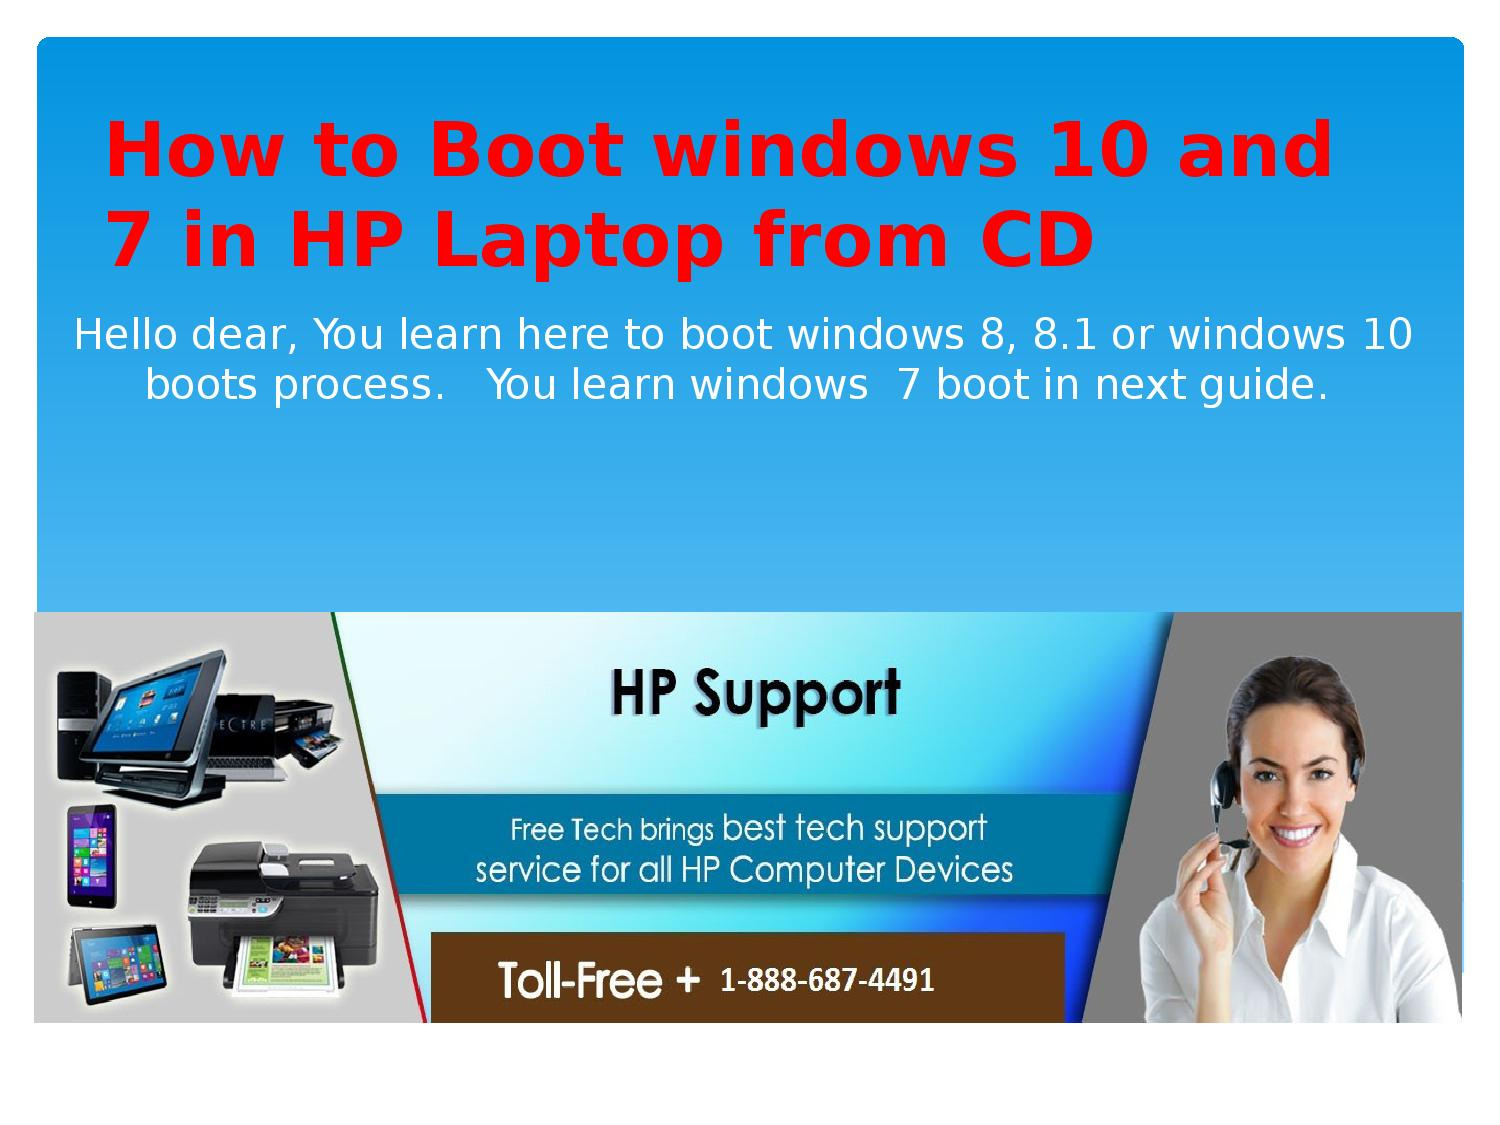 How to Boot windows 10 and 8 1 in HP Laptop from CD